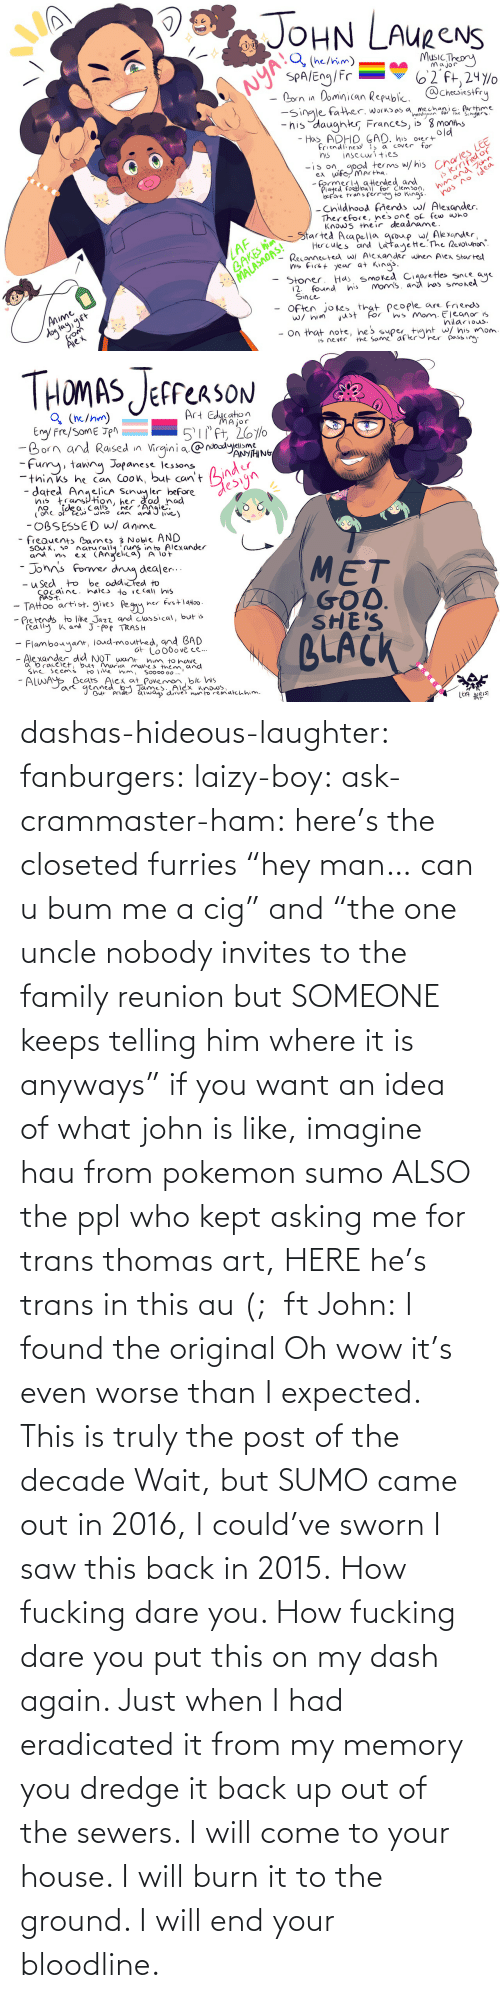 "Come To: dashas-hideous-laughter:  fanburgers:   laizy-boy:   ask-crammaster-ham:   here's the closeted furries ""hey man… can u bum me a cig"" and ""the one uncle nobody invites to the family reunion but SOMEONE keeps telling him where it is anyways""   if you want an idea of what john is like, imagine hau from pokemon sumo ALSO the ppl who kept asking me for trans thomas art, HERE he's trans in this au (;  ft John:    I found the original     Oh wow it's even worse than I expected. This is truly the post of the decade    Wait, but SUMO came out in 2016, I could've sworn I saw this back in 2015.    How fucking dare you. How fucking dare you put this on my dash again. Just when I had eradicated it from my memory you dredge it back up out of the sewers. I will come to your house. I will burn it to the ground. I will end your bloodline."